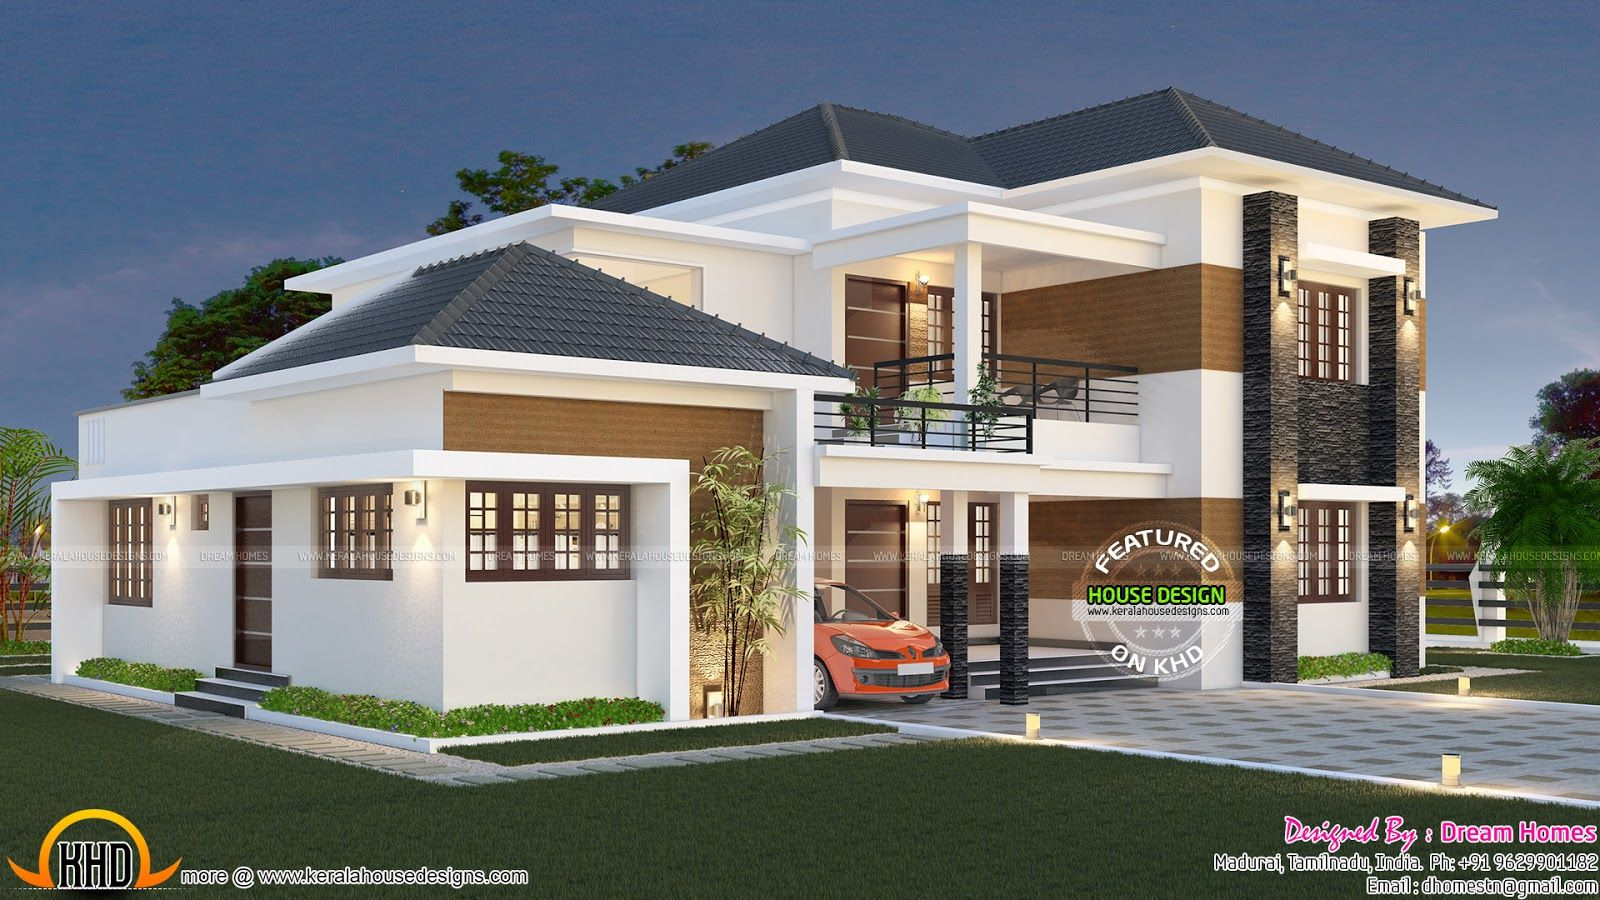 Beau Elegant South Indian Home